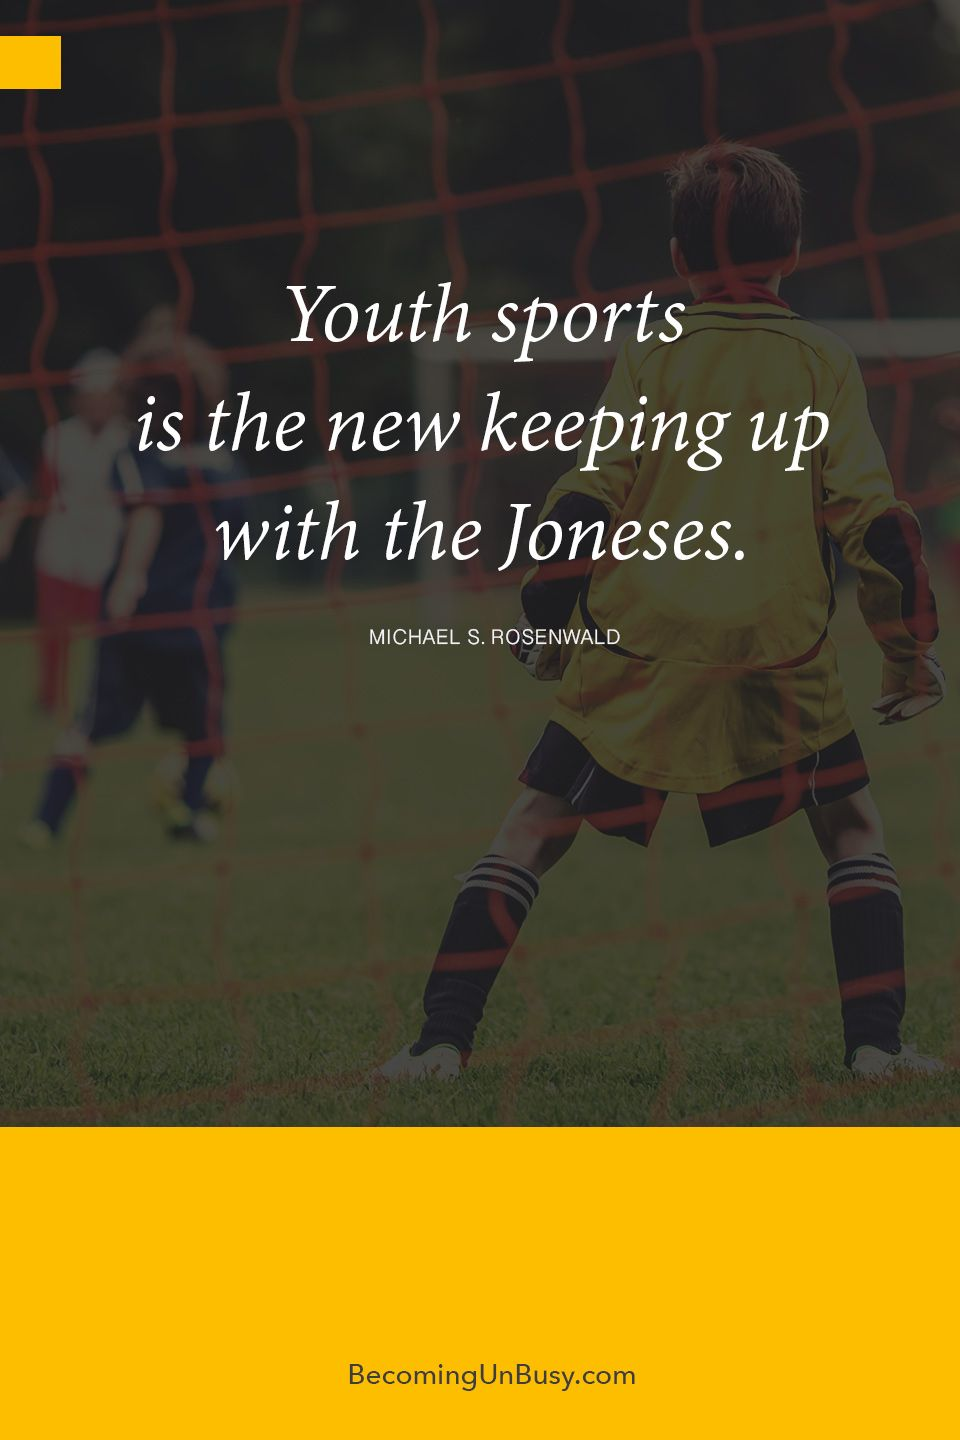 Youth sports is the new keeping up with the Joneses